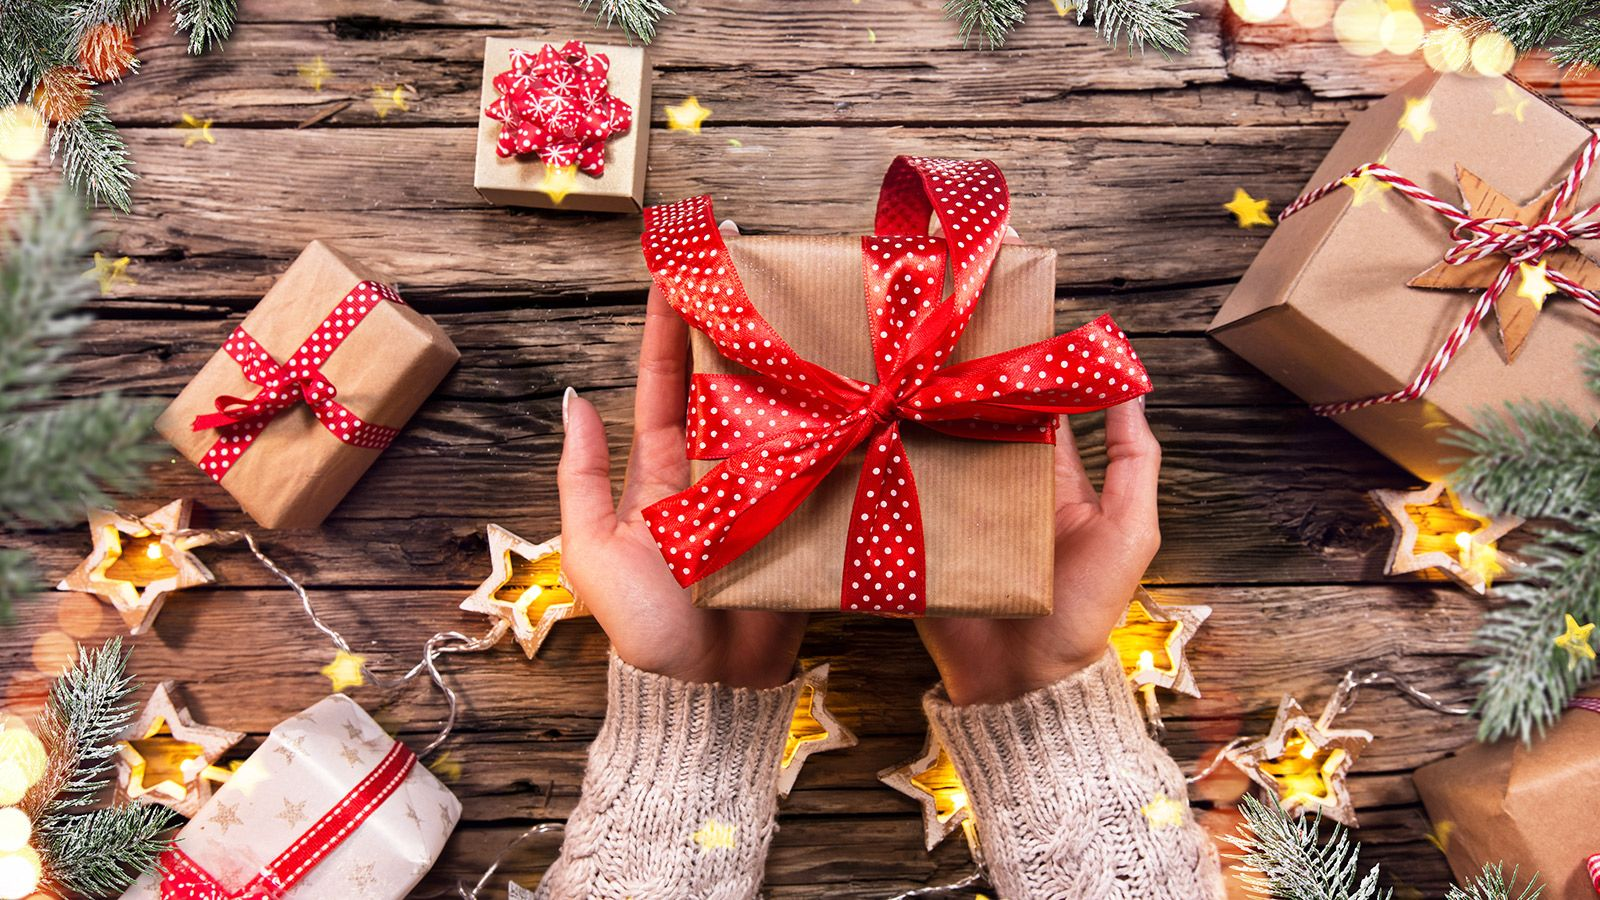 The Easyship 2020 Holiday Gift Guide